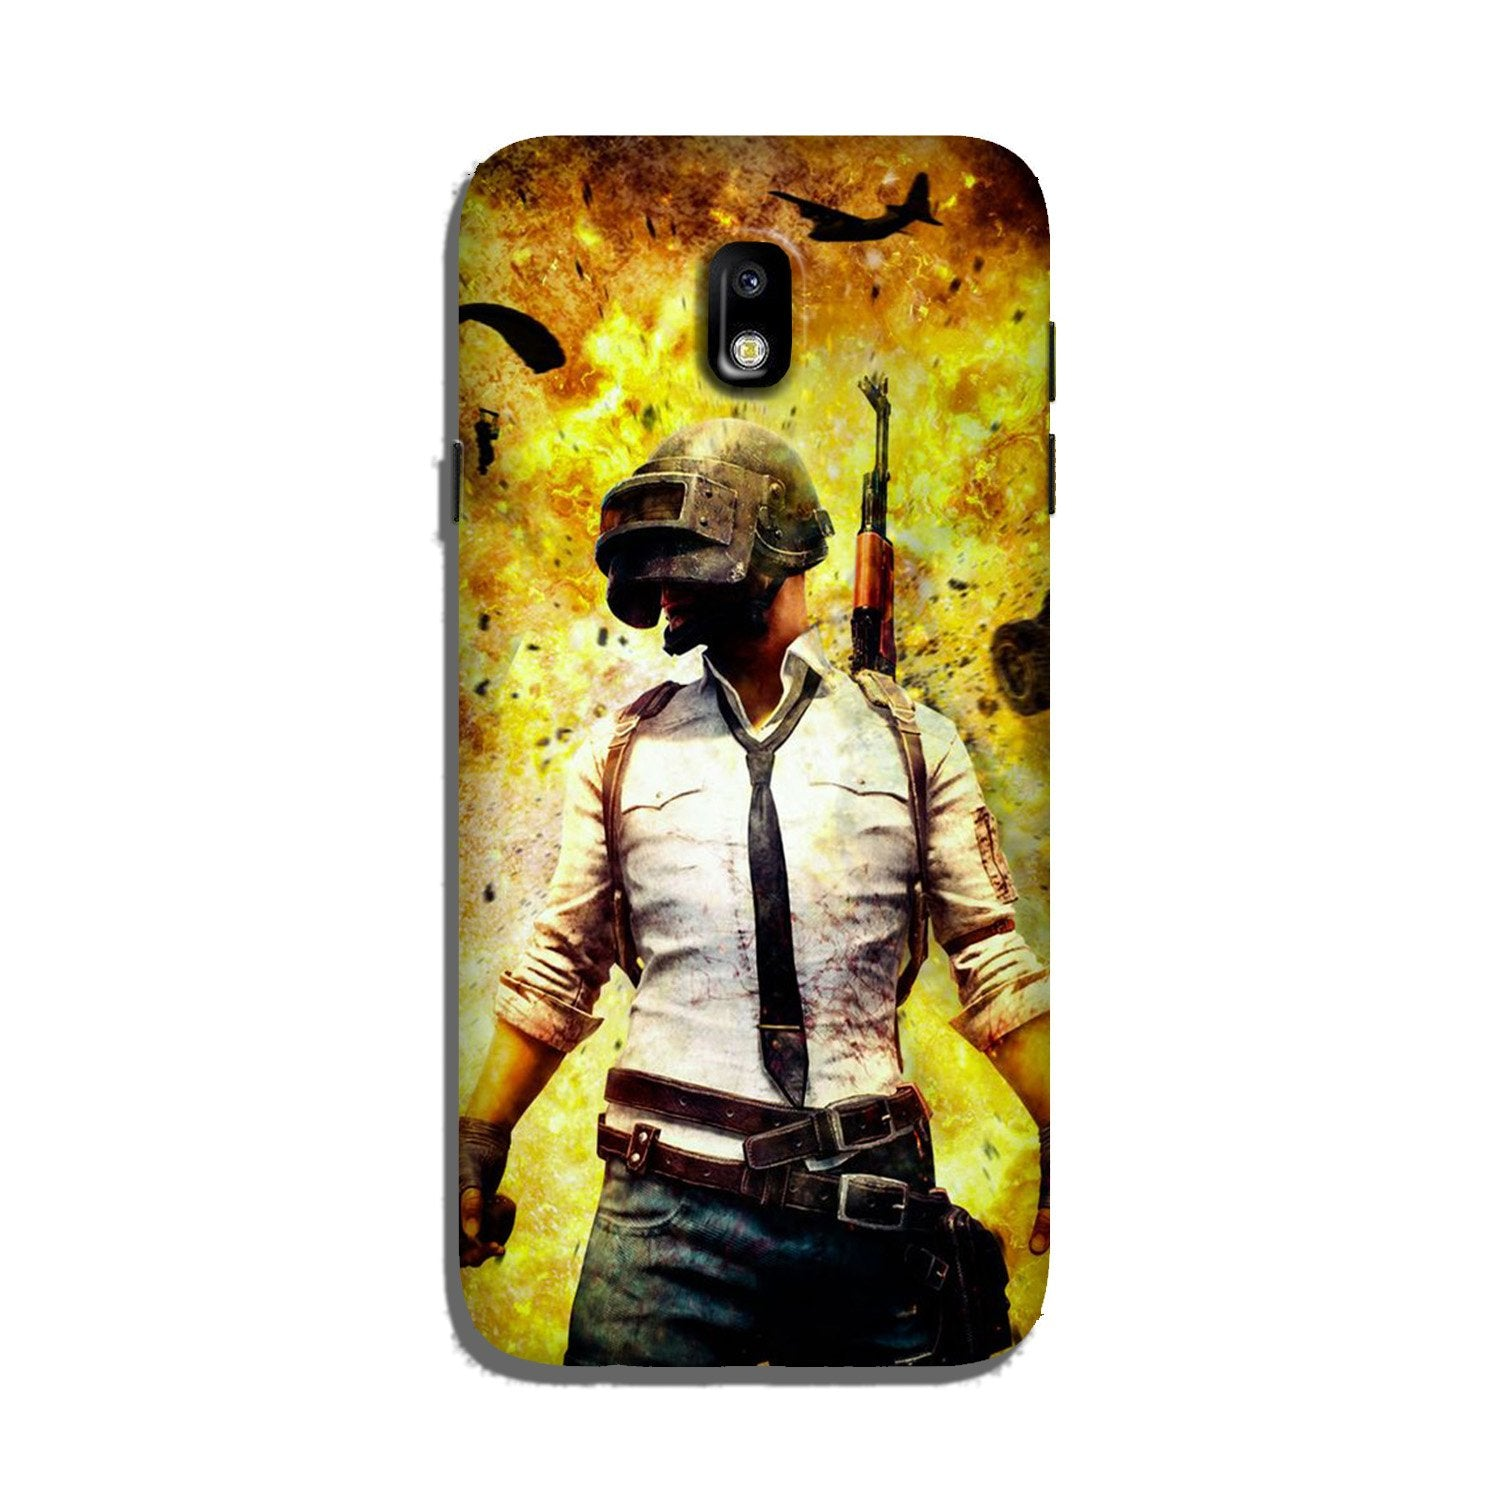 Pubg Case for Galaxy J5 Pro  (Design - 180)